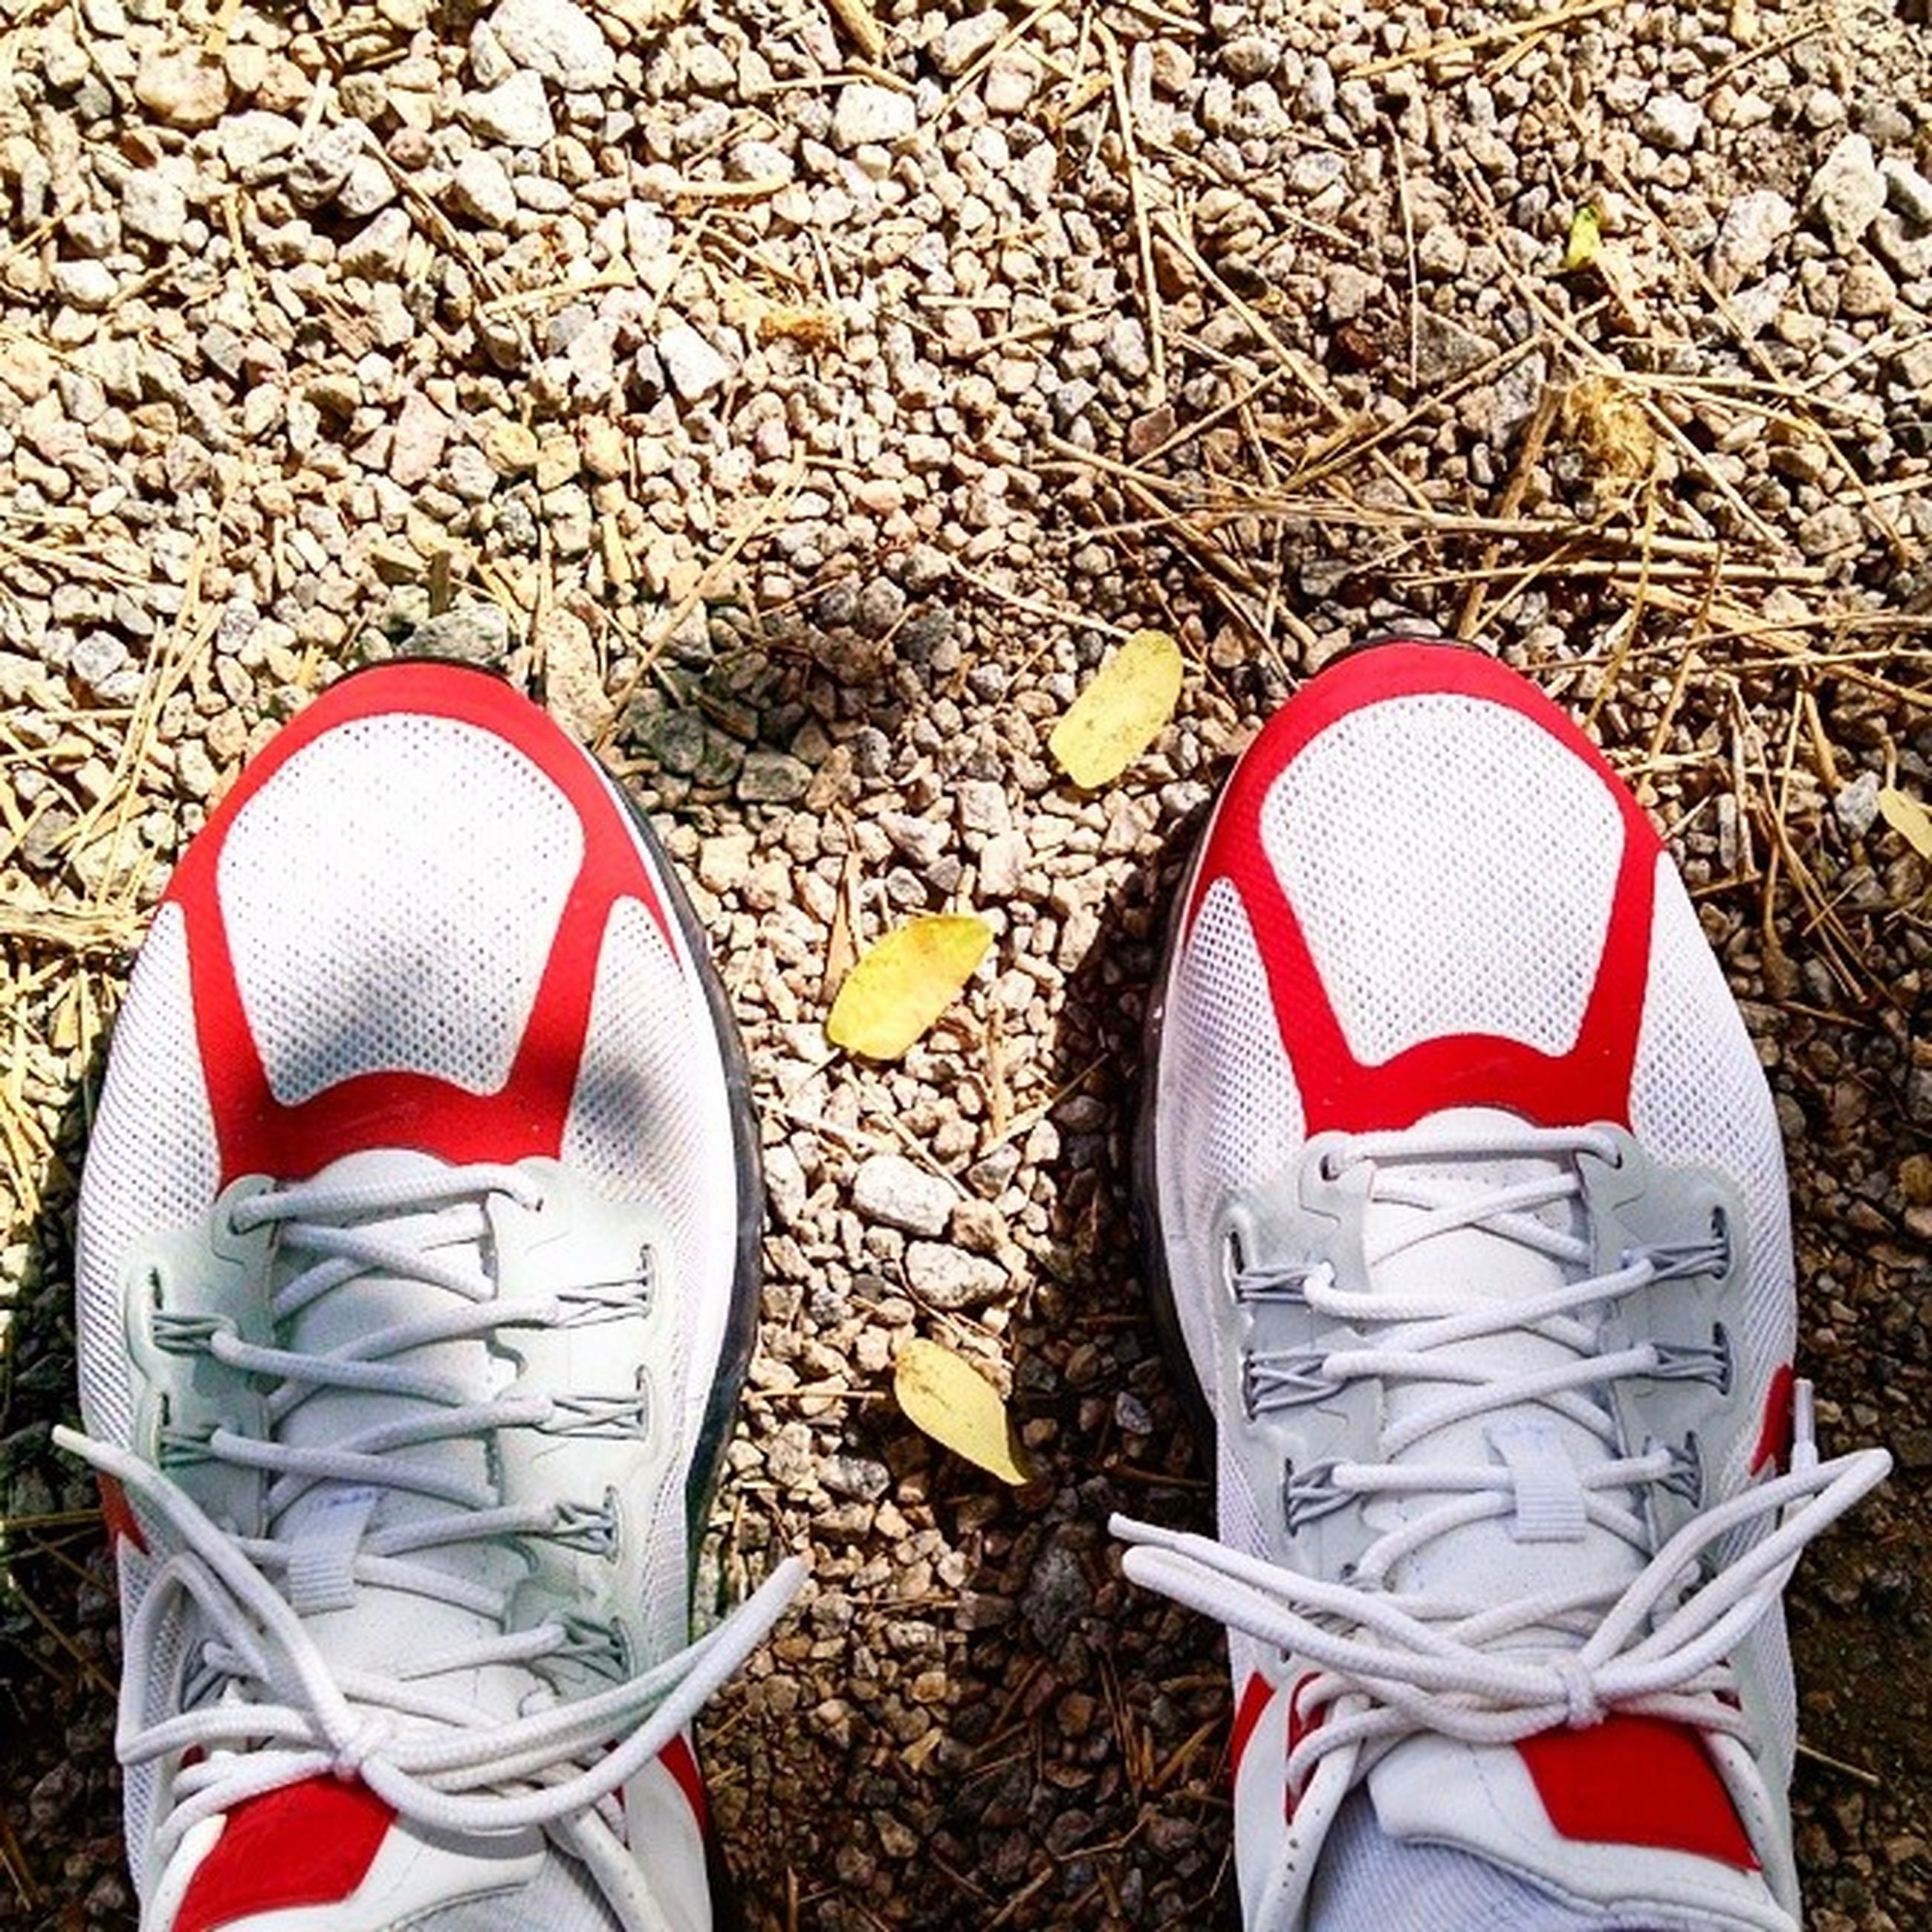 shoe, red, footwear, standing, low section, canvas shoe, white color, high angle view, person, day, close-up, pair, lifestyles, outdoors, creativity, leisure activity, directly above, identity